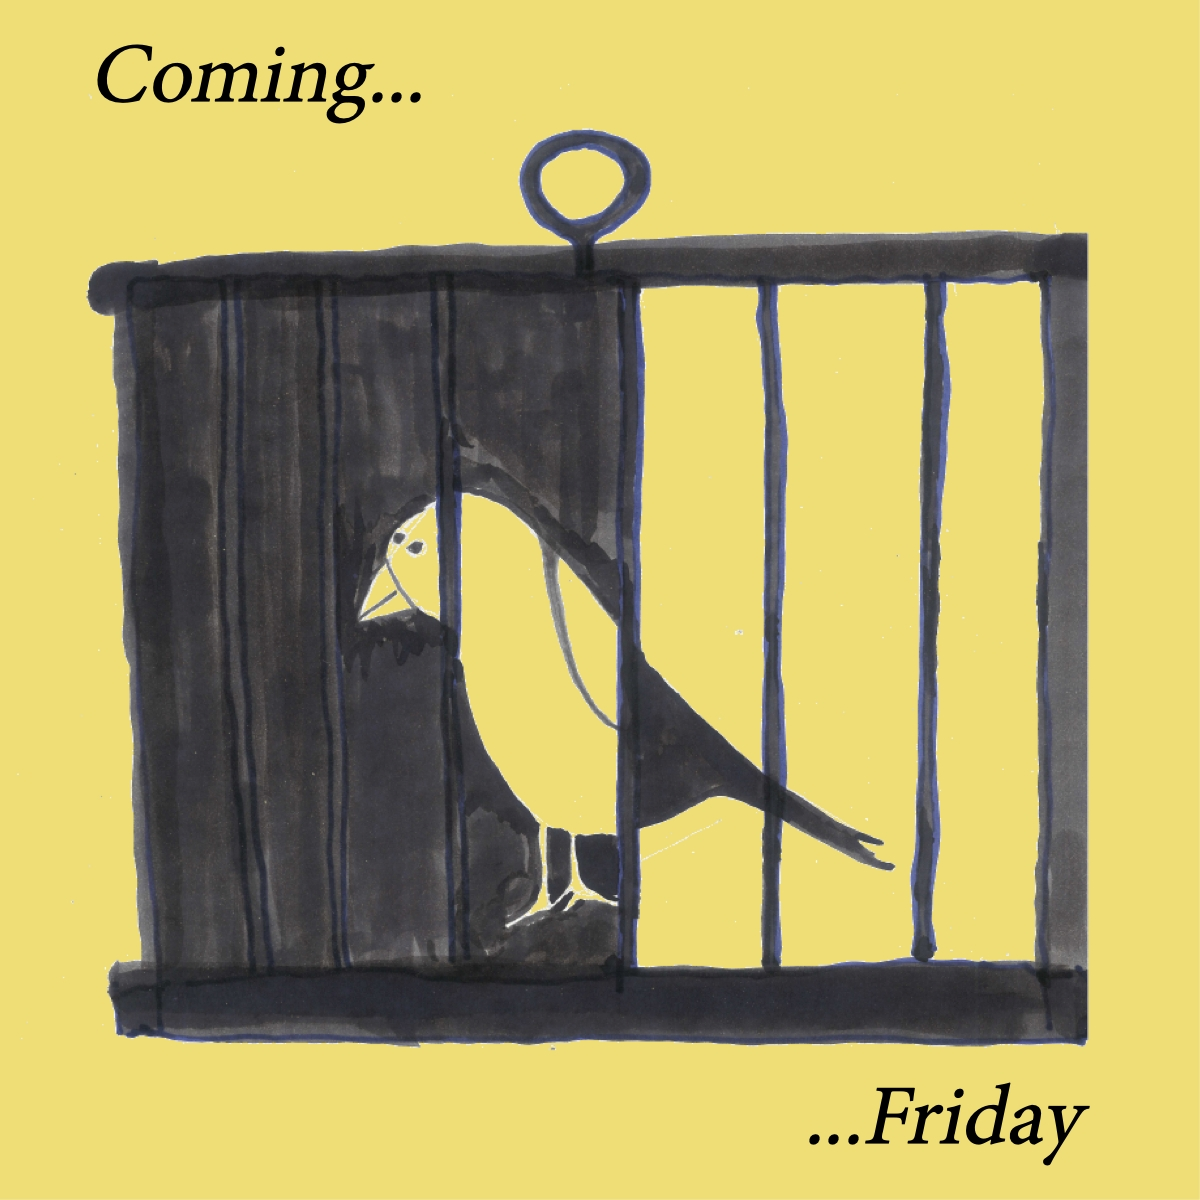 Drawing of a canary in the cage. Text: Coming... Friday